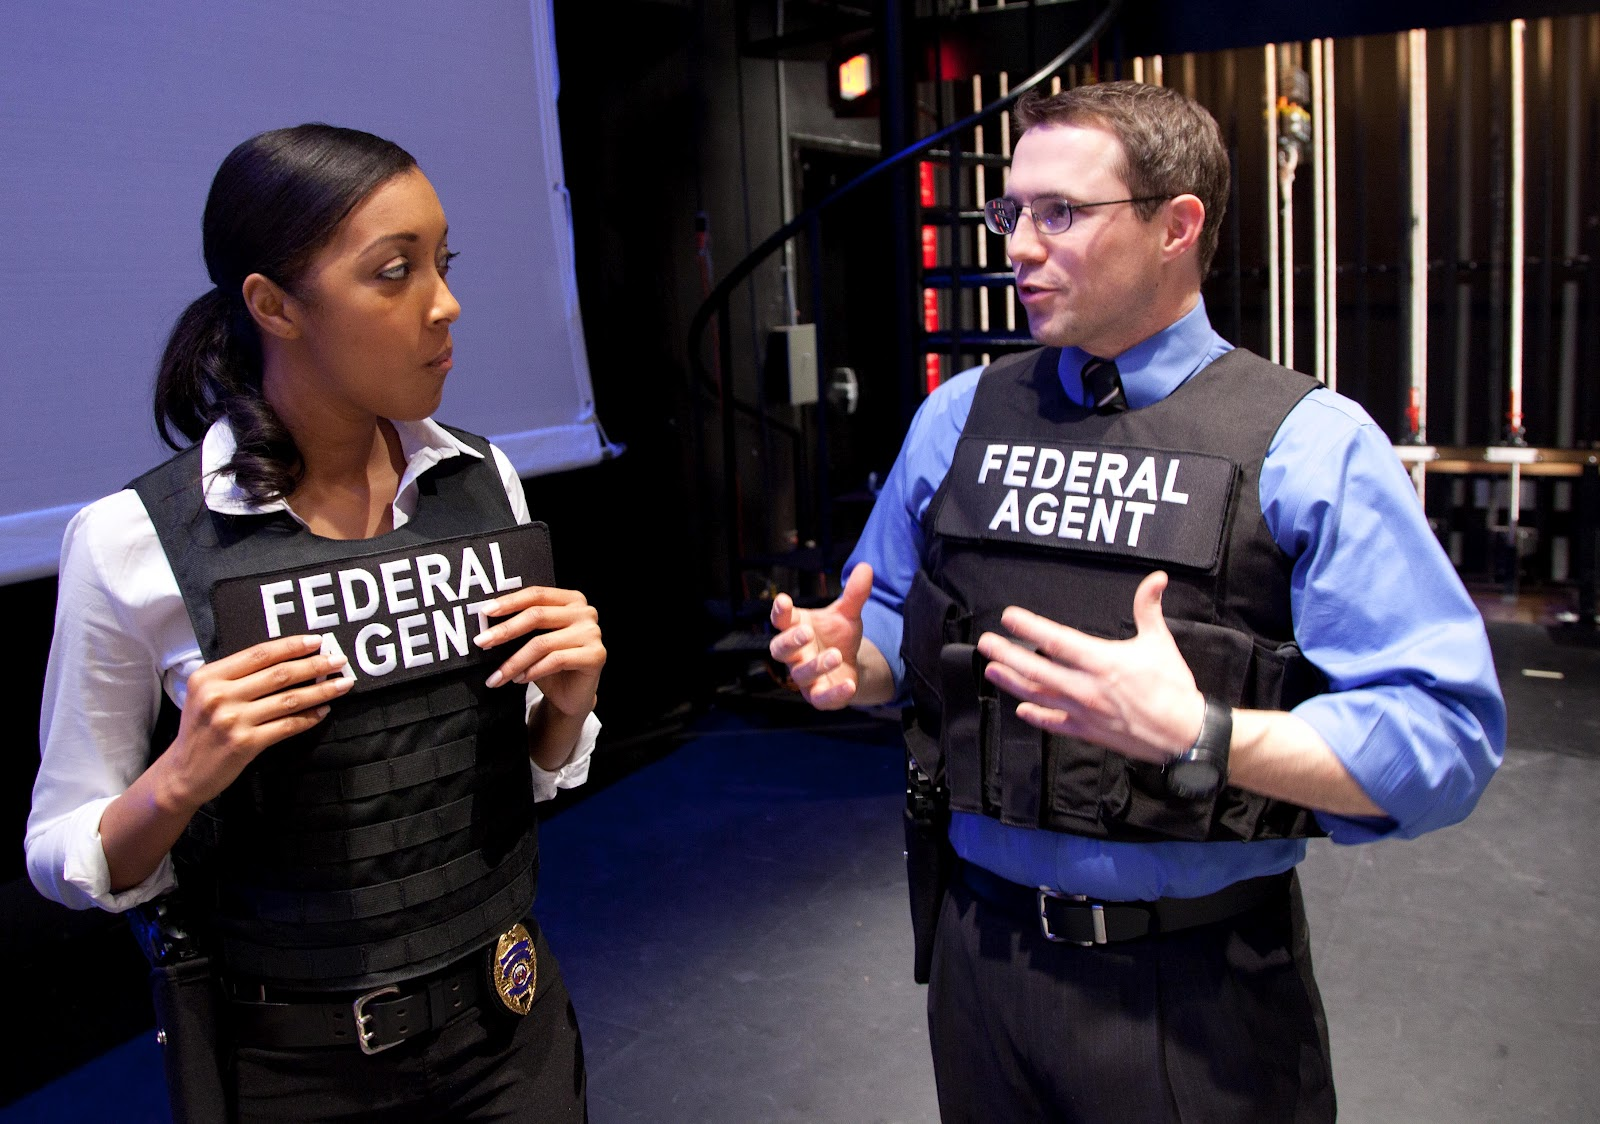 Real Fbi Agent Pretty dam fly in real fbiReal Fbi Agent